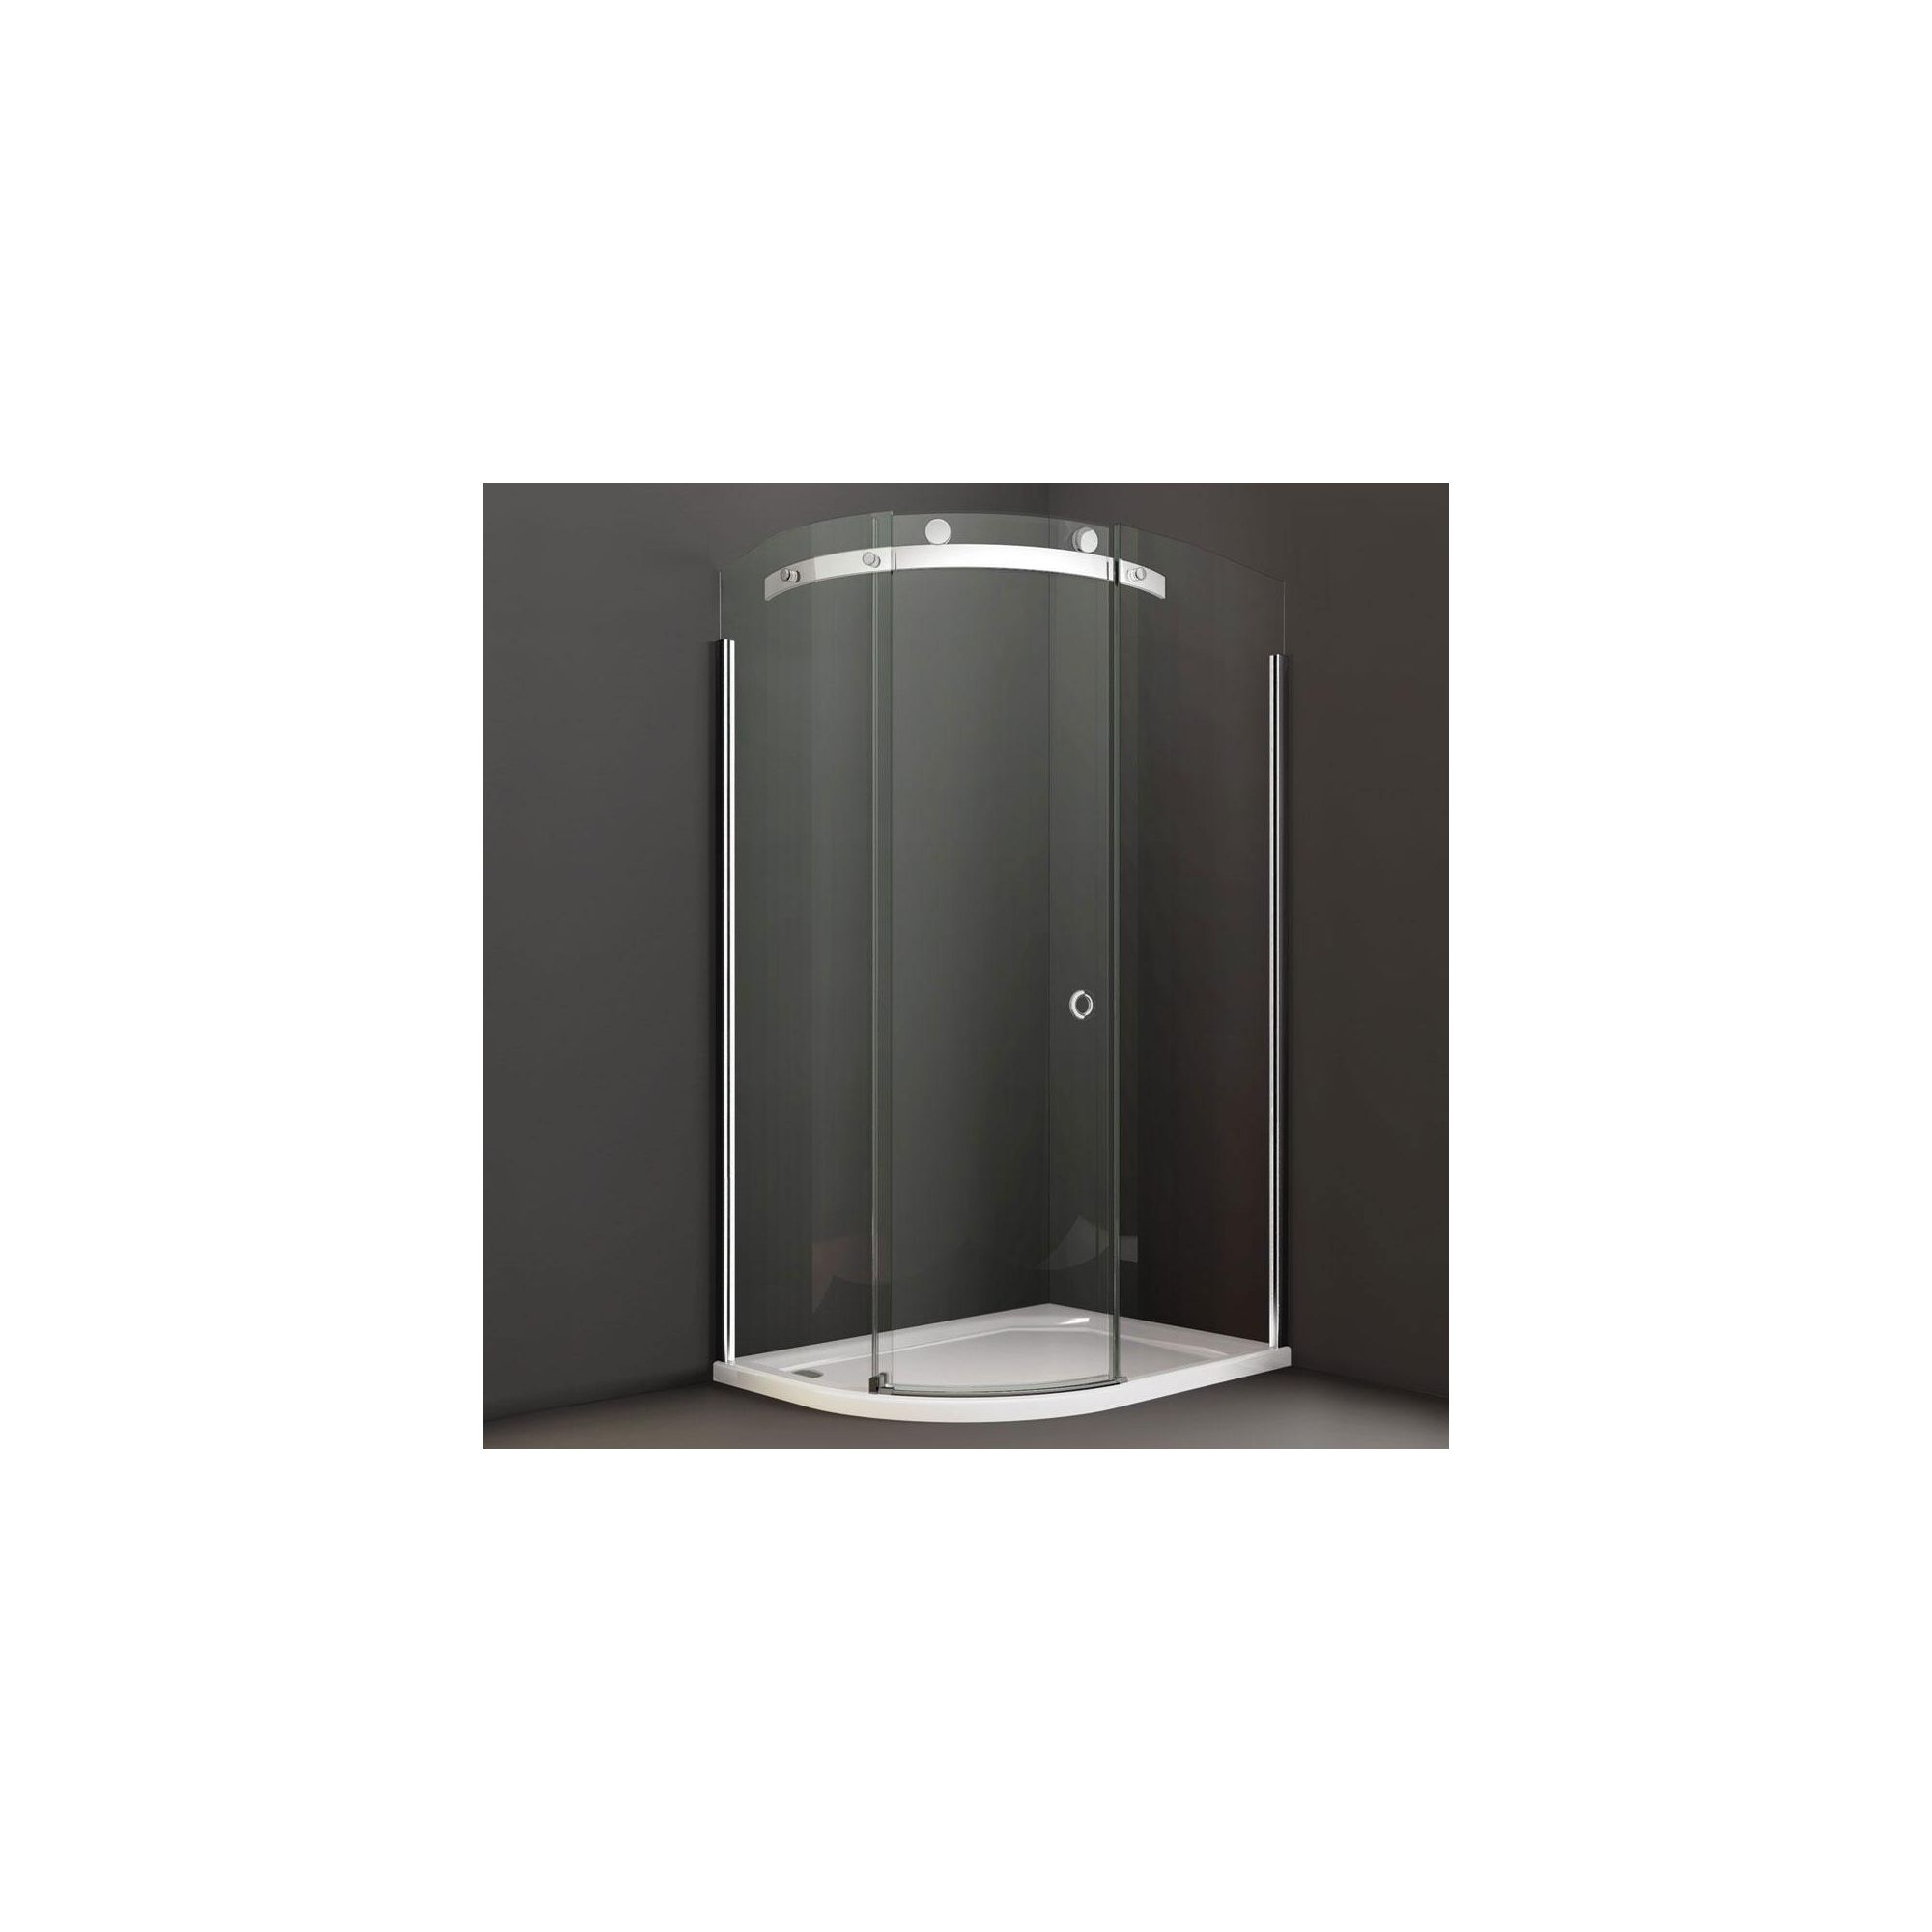 Merlyn Series 10 Offset Quadrant Shower Door, 1000mm x 800mm, 10mm Clear Glass, Left Handed at Tesco Direct